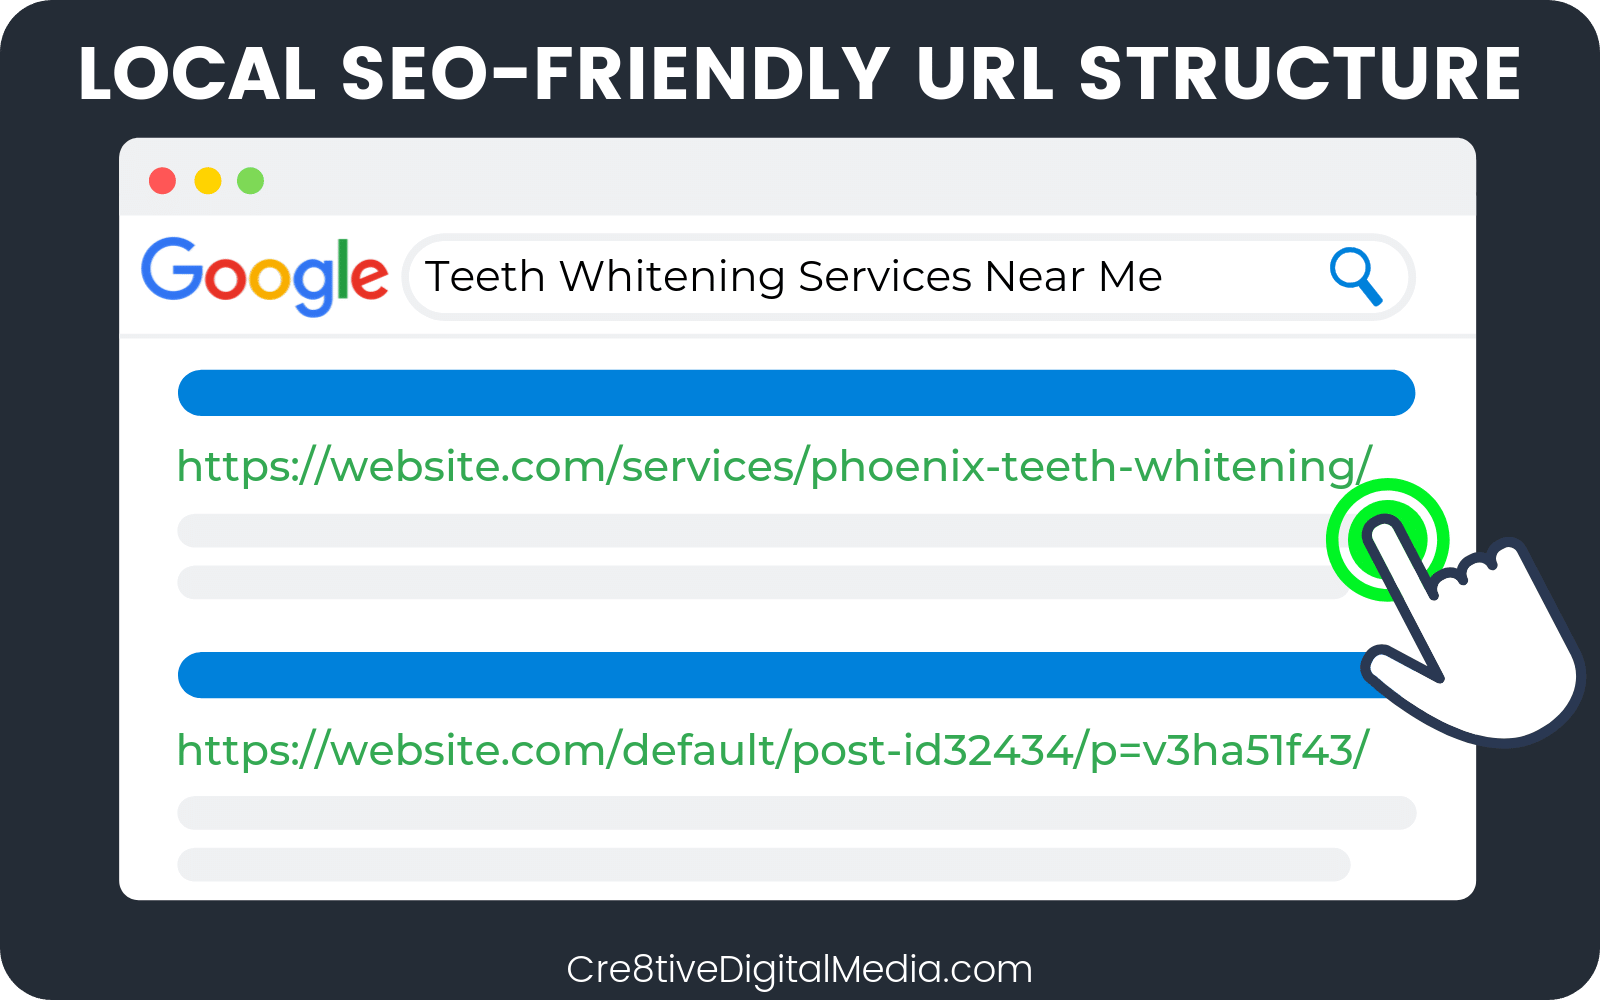 Local SEO-Friendly URL For Dentists on Google